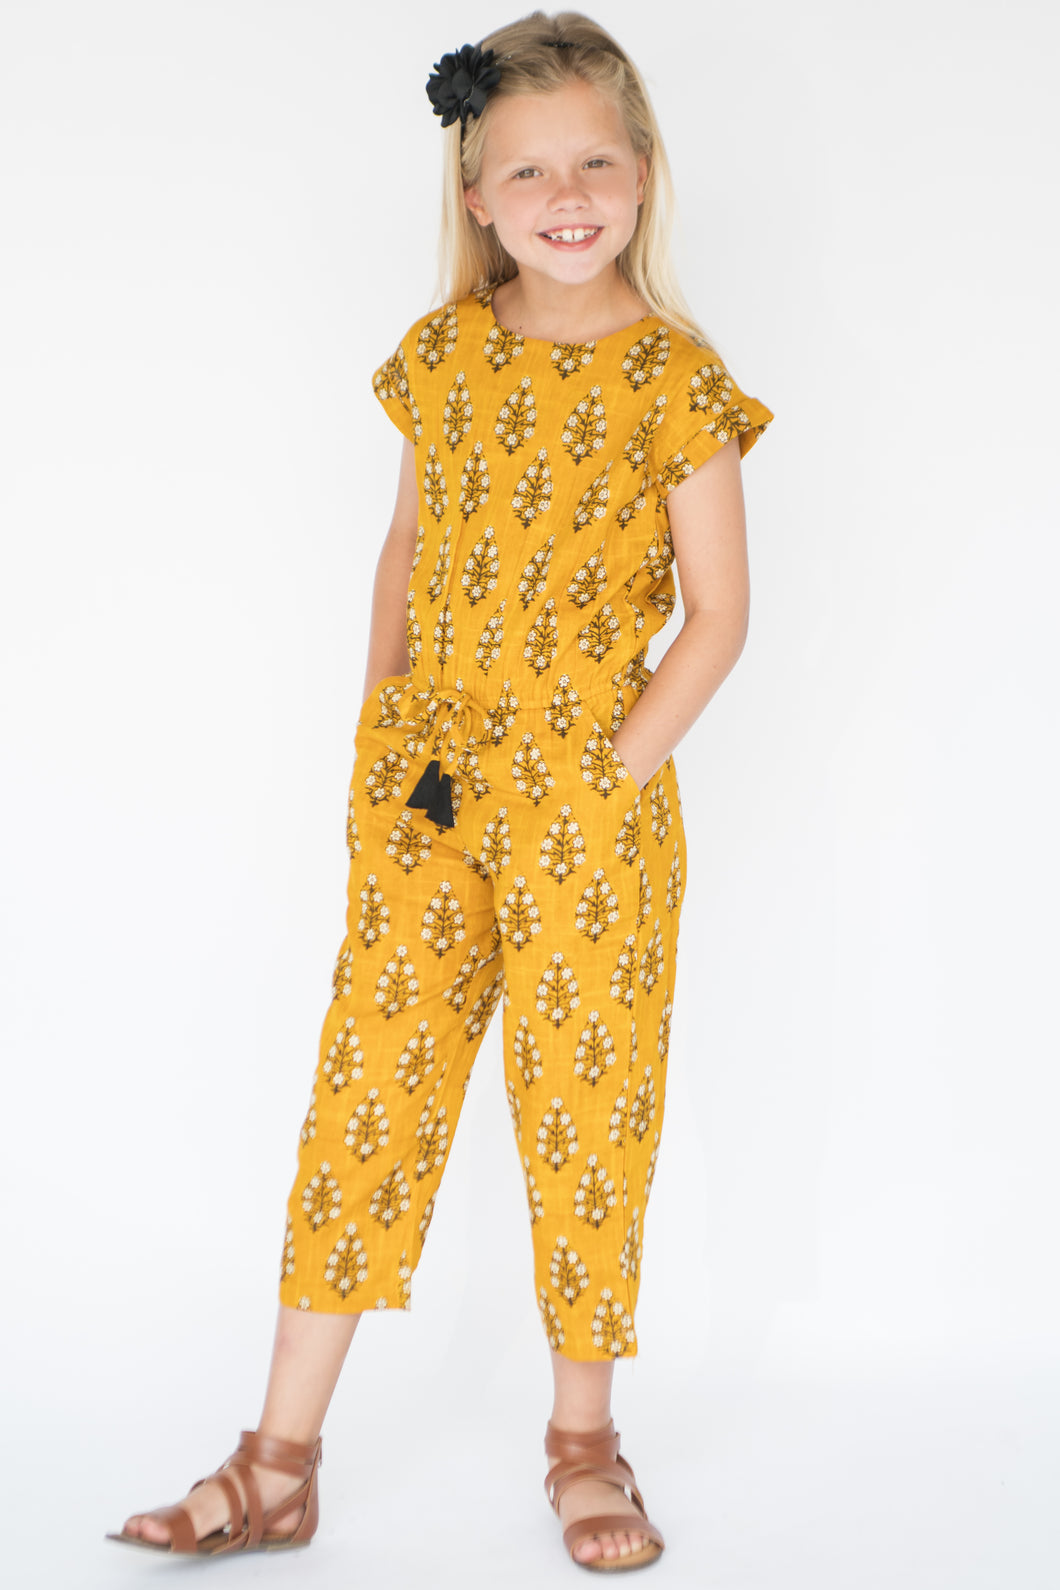 Yellow Jumpsuit With Black Accent - Kids Wholesale Boutique Clothing, Dress - Girls Dresses, Yo Baby Wholesale - Yo Baby